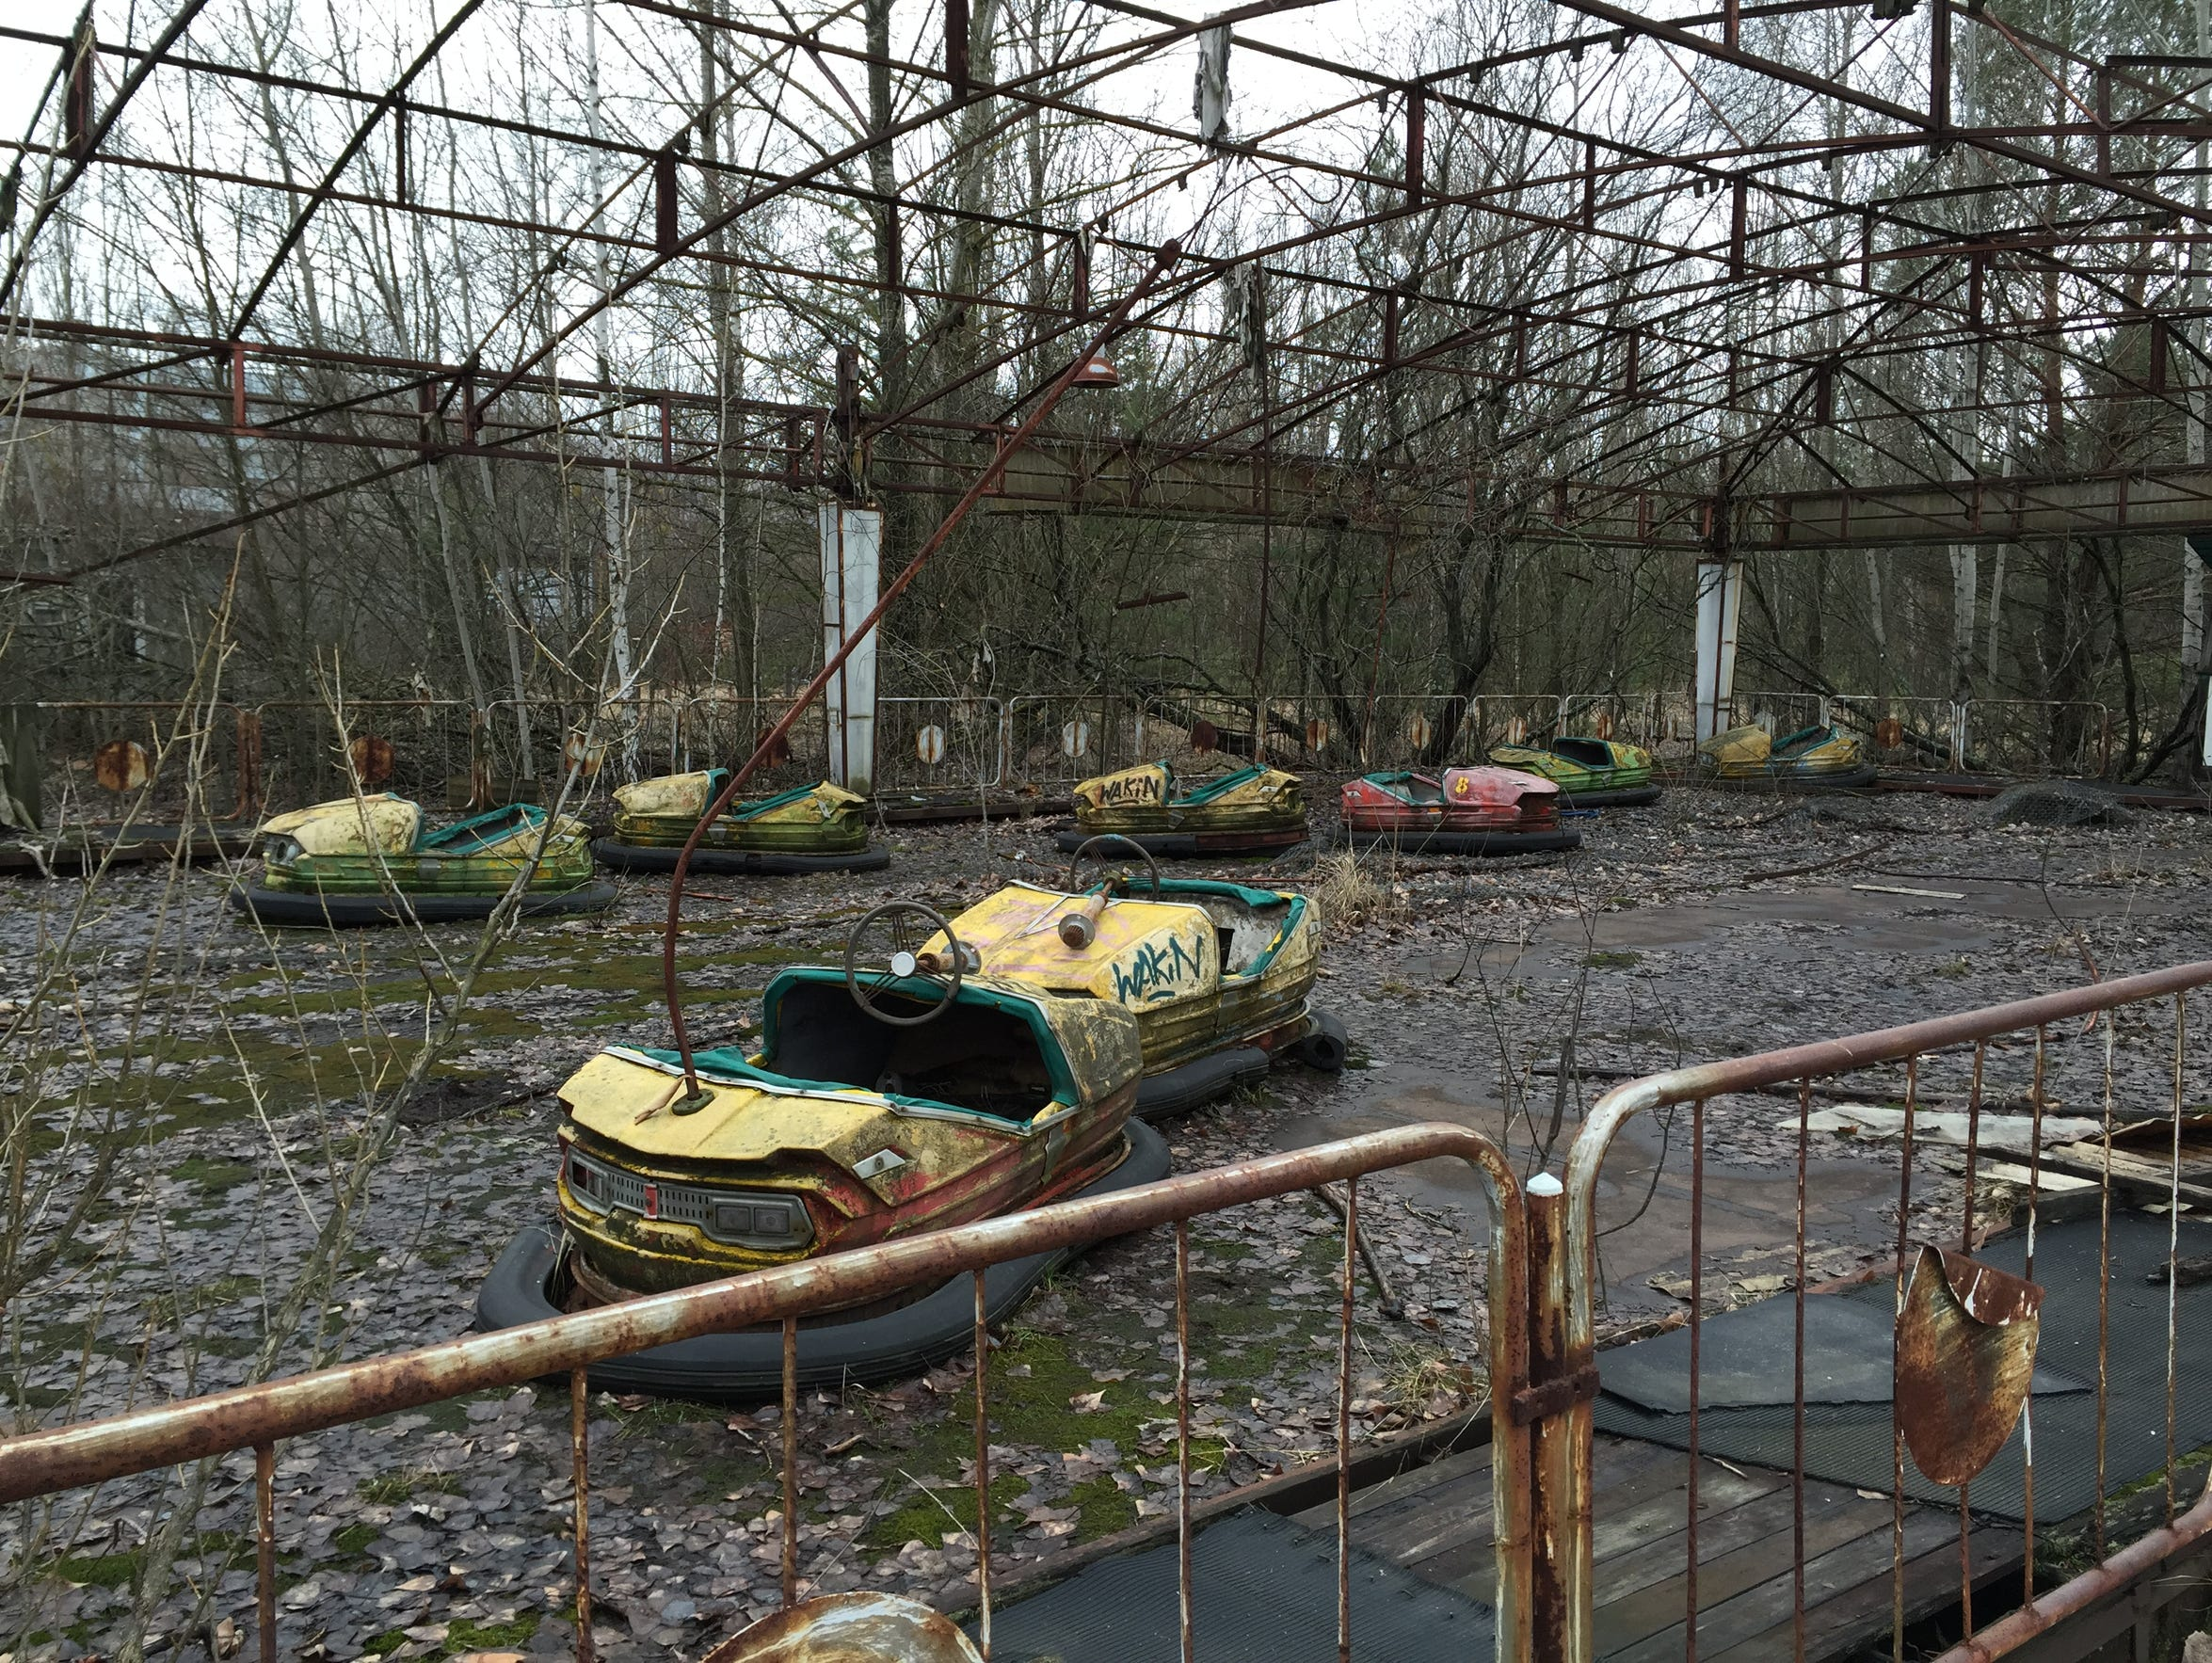 Rusting bumper cars that were part of an amusement